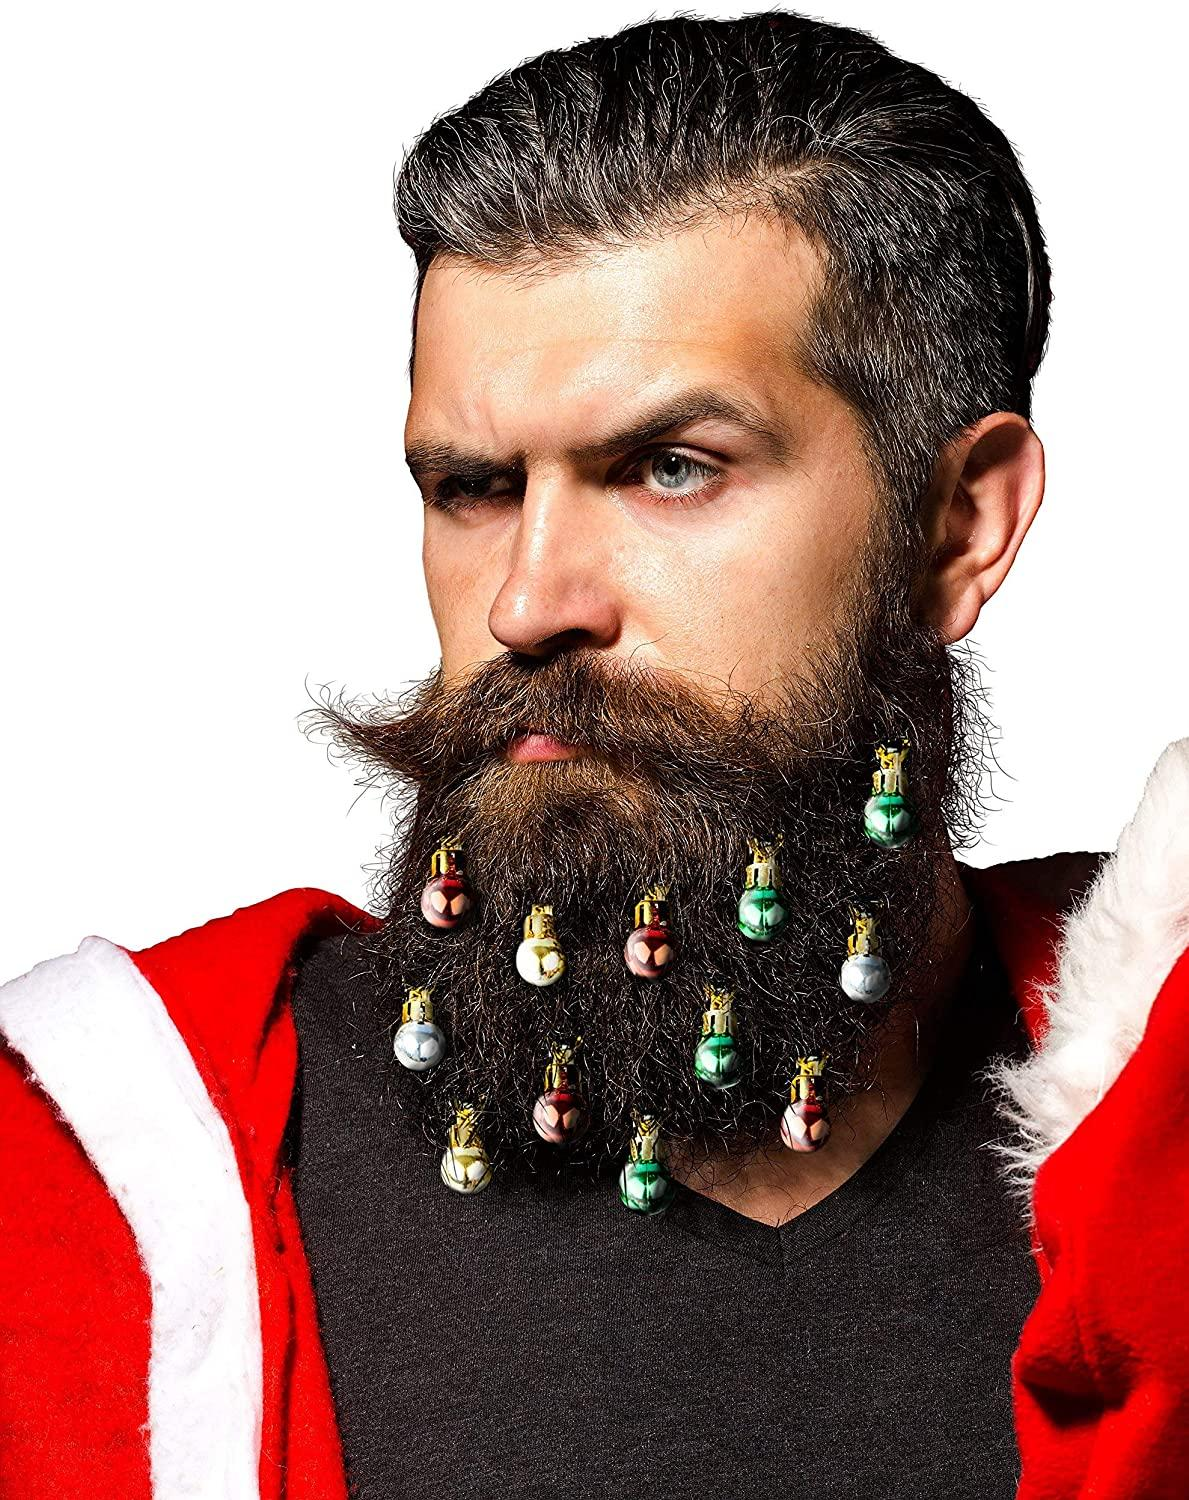 Beardaments Beard Ornaments, $10 @amazon.com